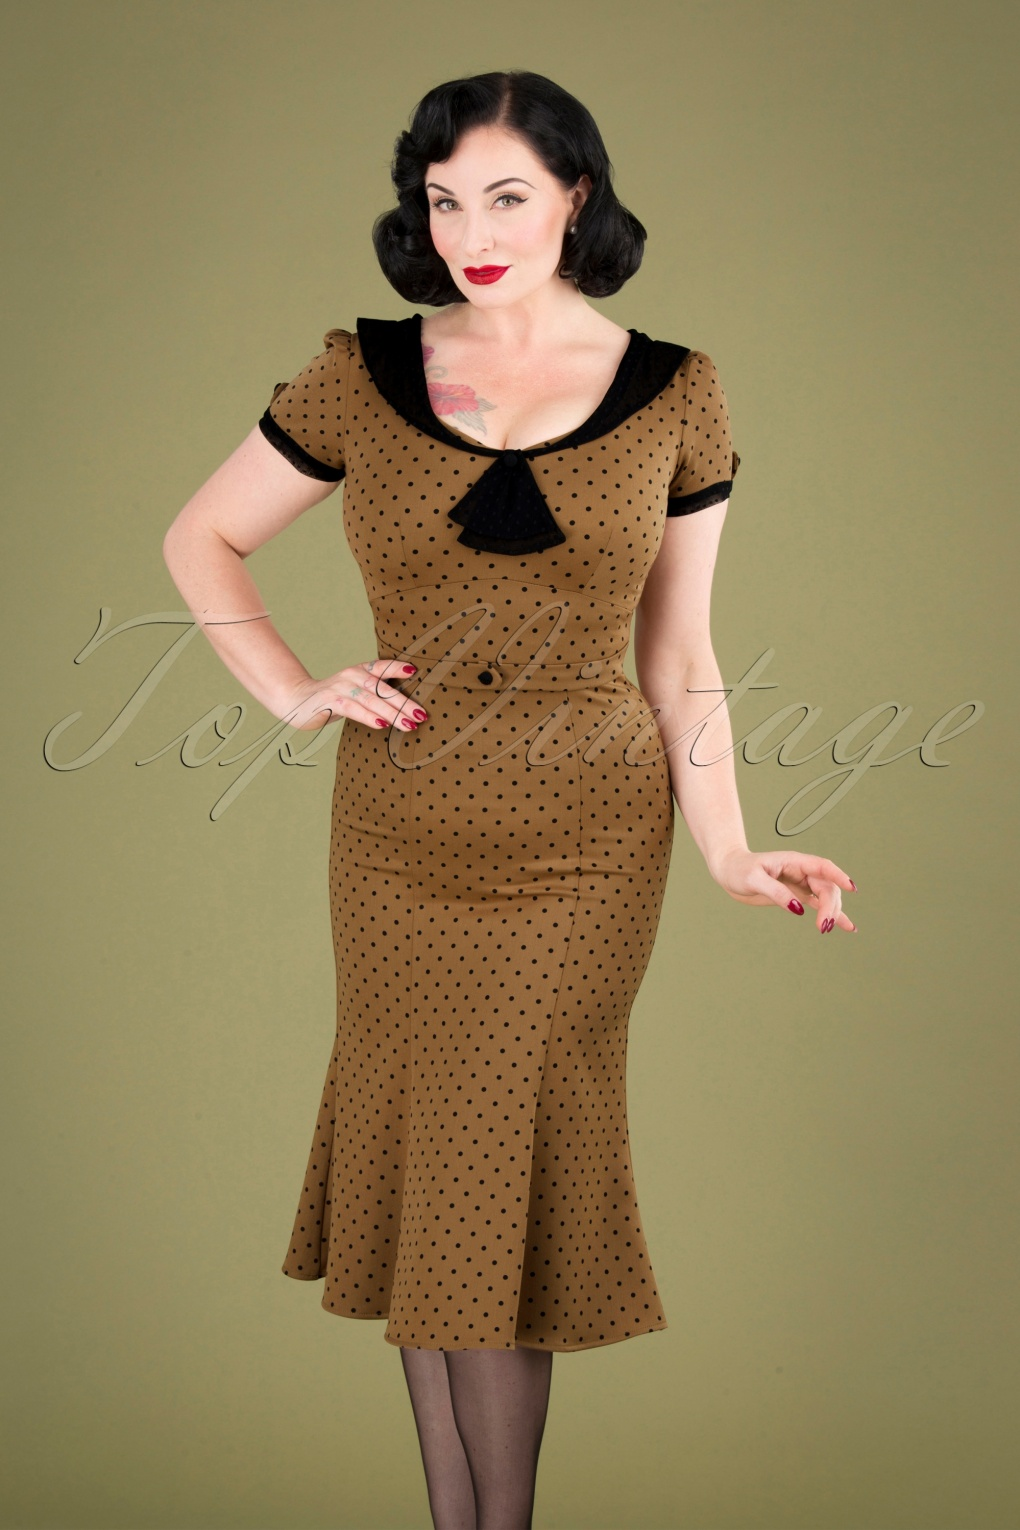 500 Vintage Style Dresses for Sale | Vintage Inspired Dresses 40s Raileen Polkadot Pencil Dress in Cappuccino £107.70 AT vintagedancer.com